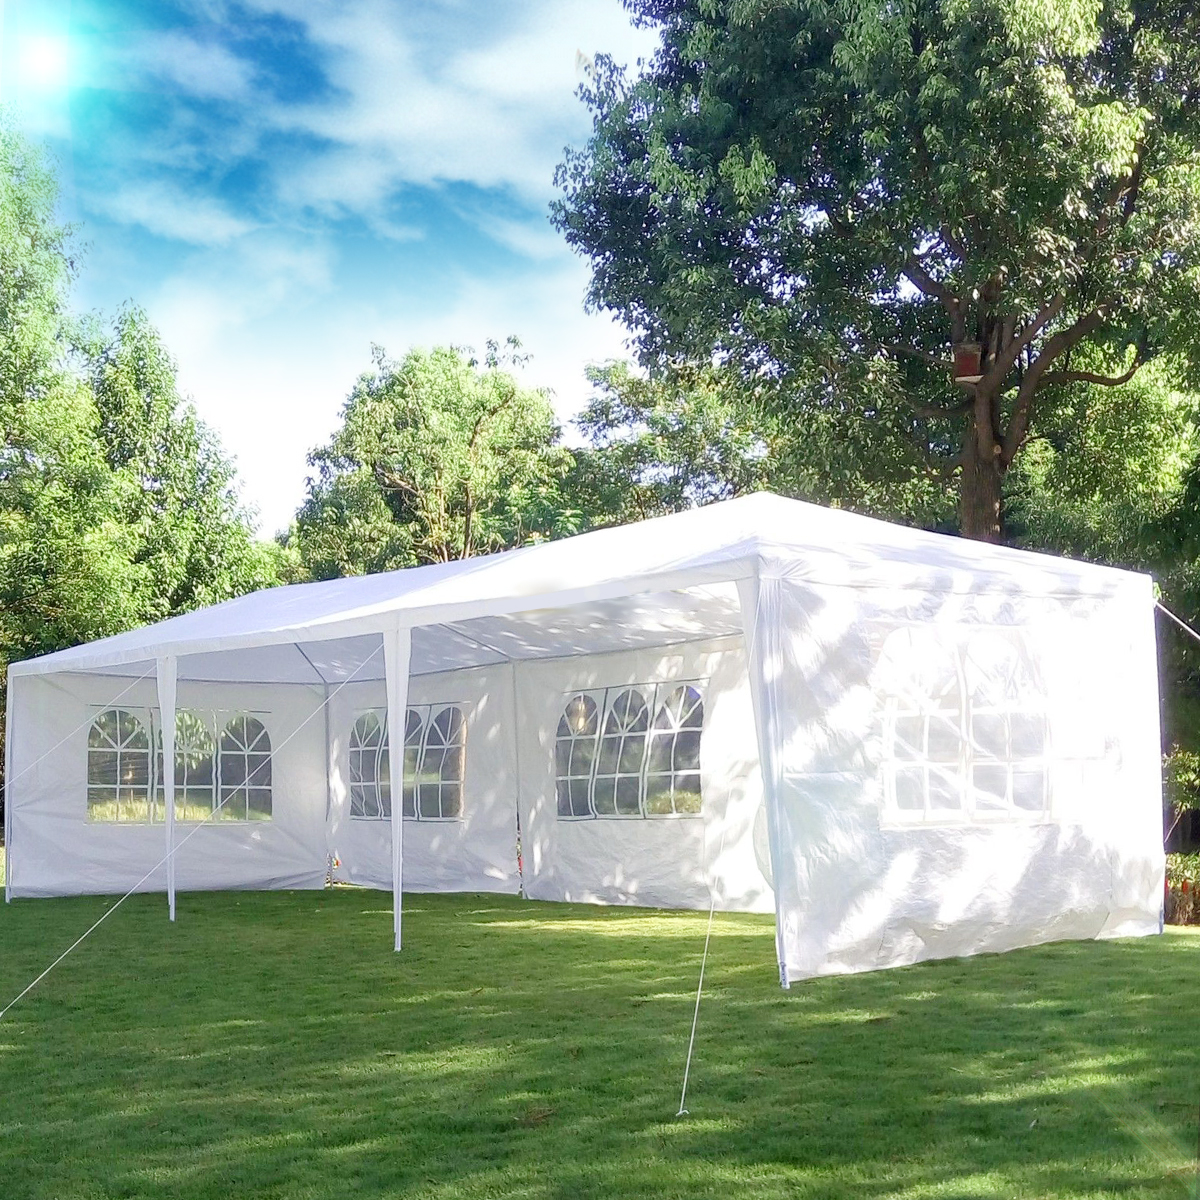 Ktaxon 10' x 30' Party Tent Wedding Canopy Gazebo Wedding Tent Pavilion